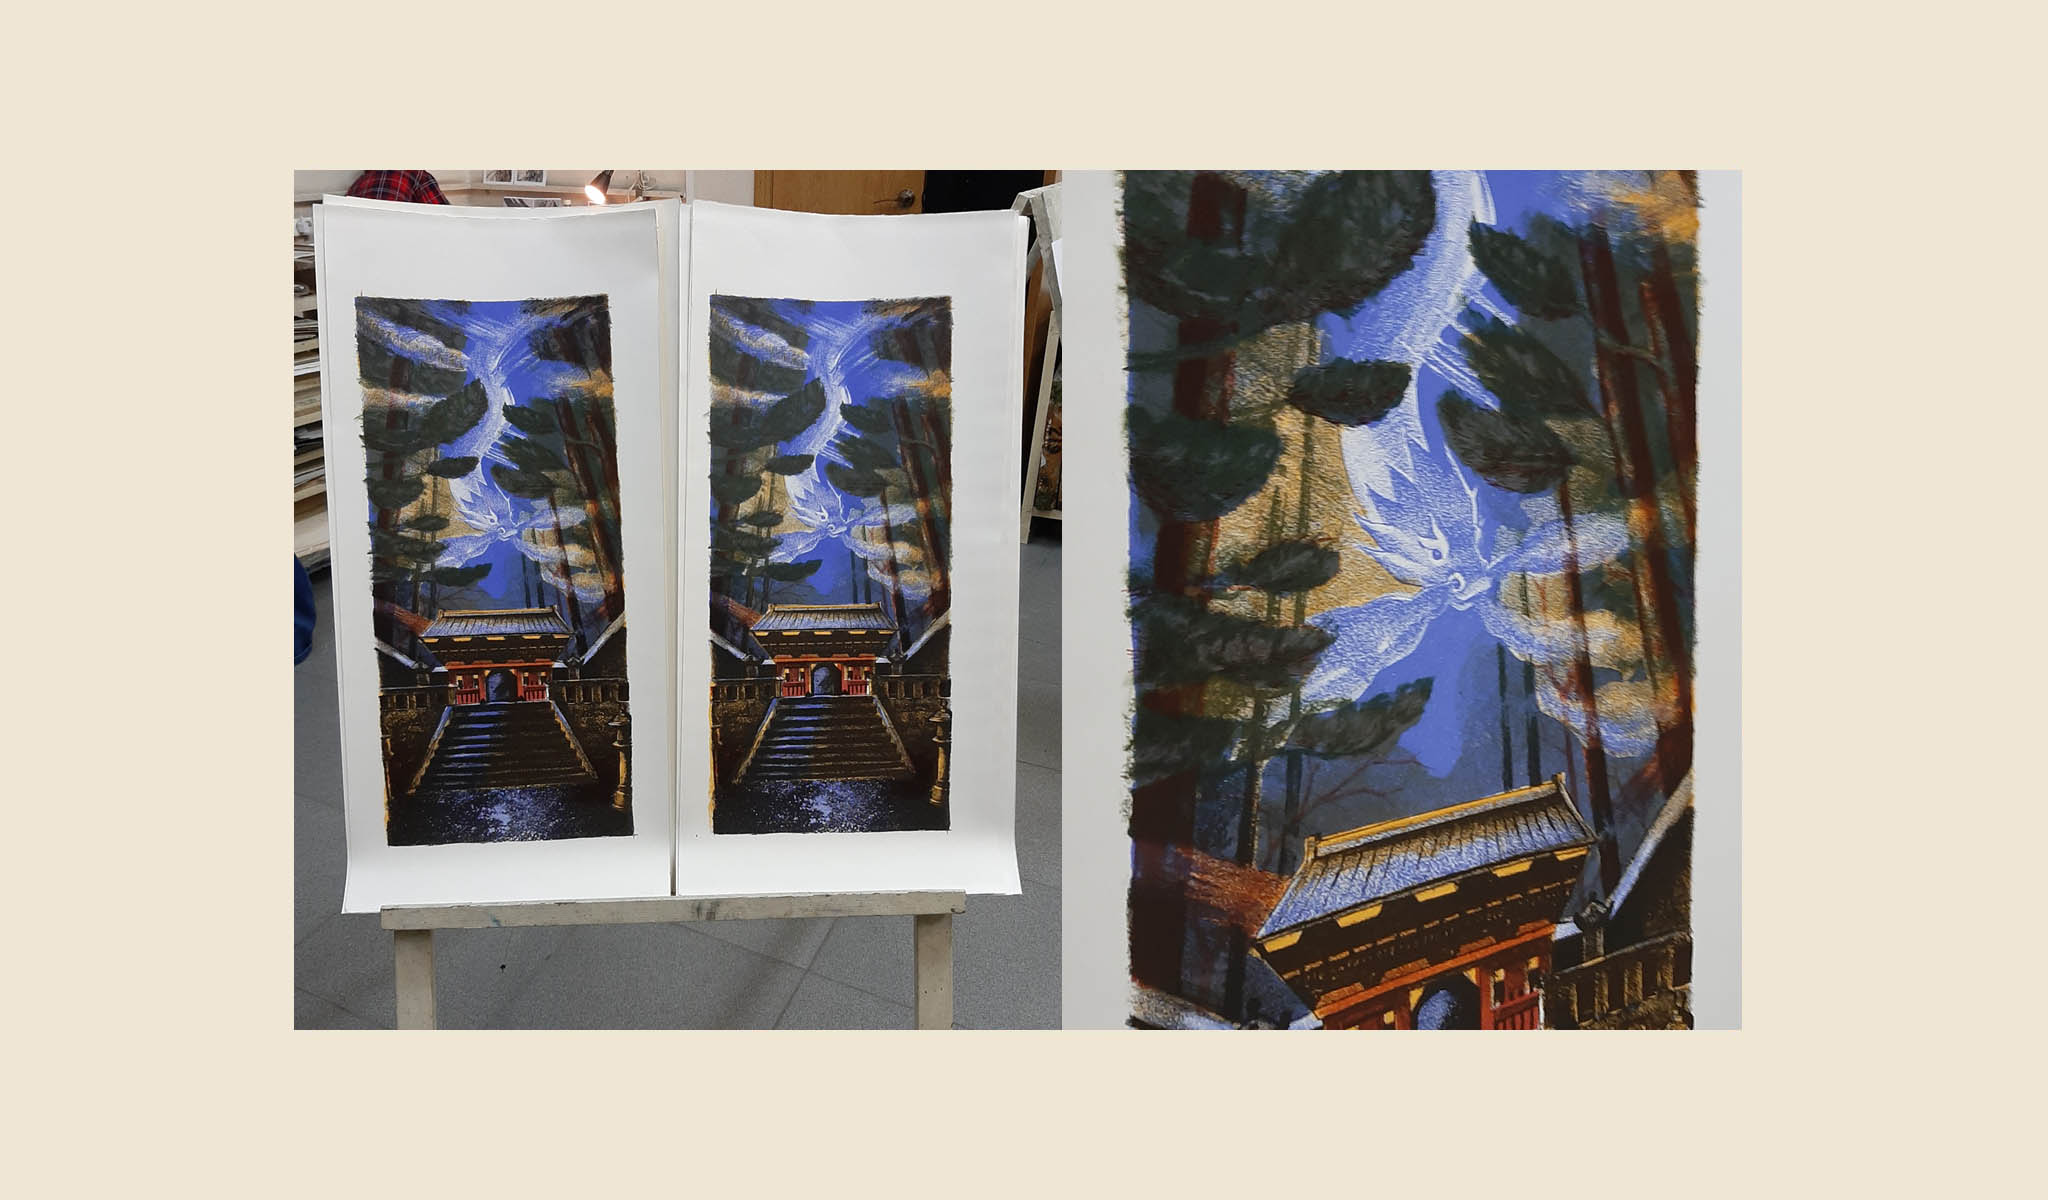 Color lithography